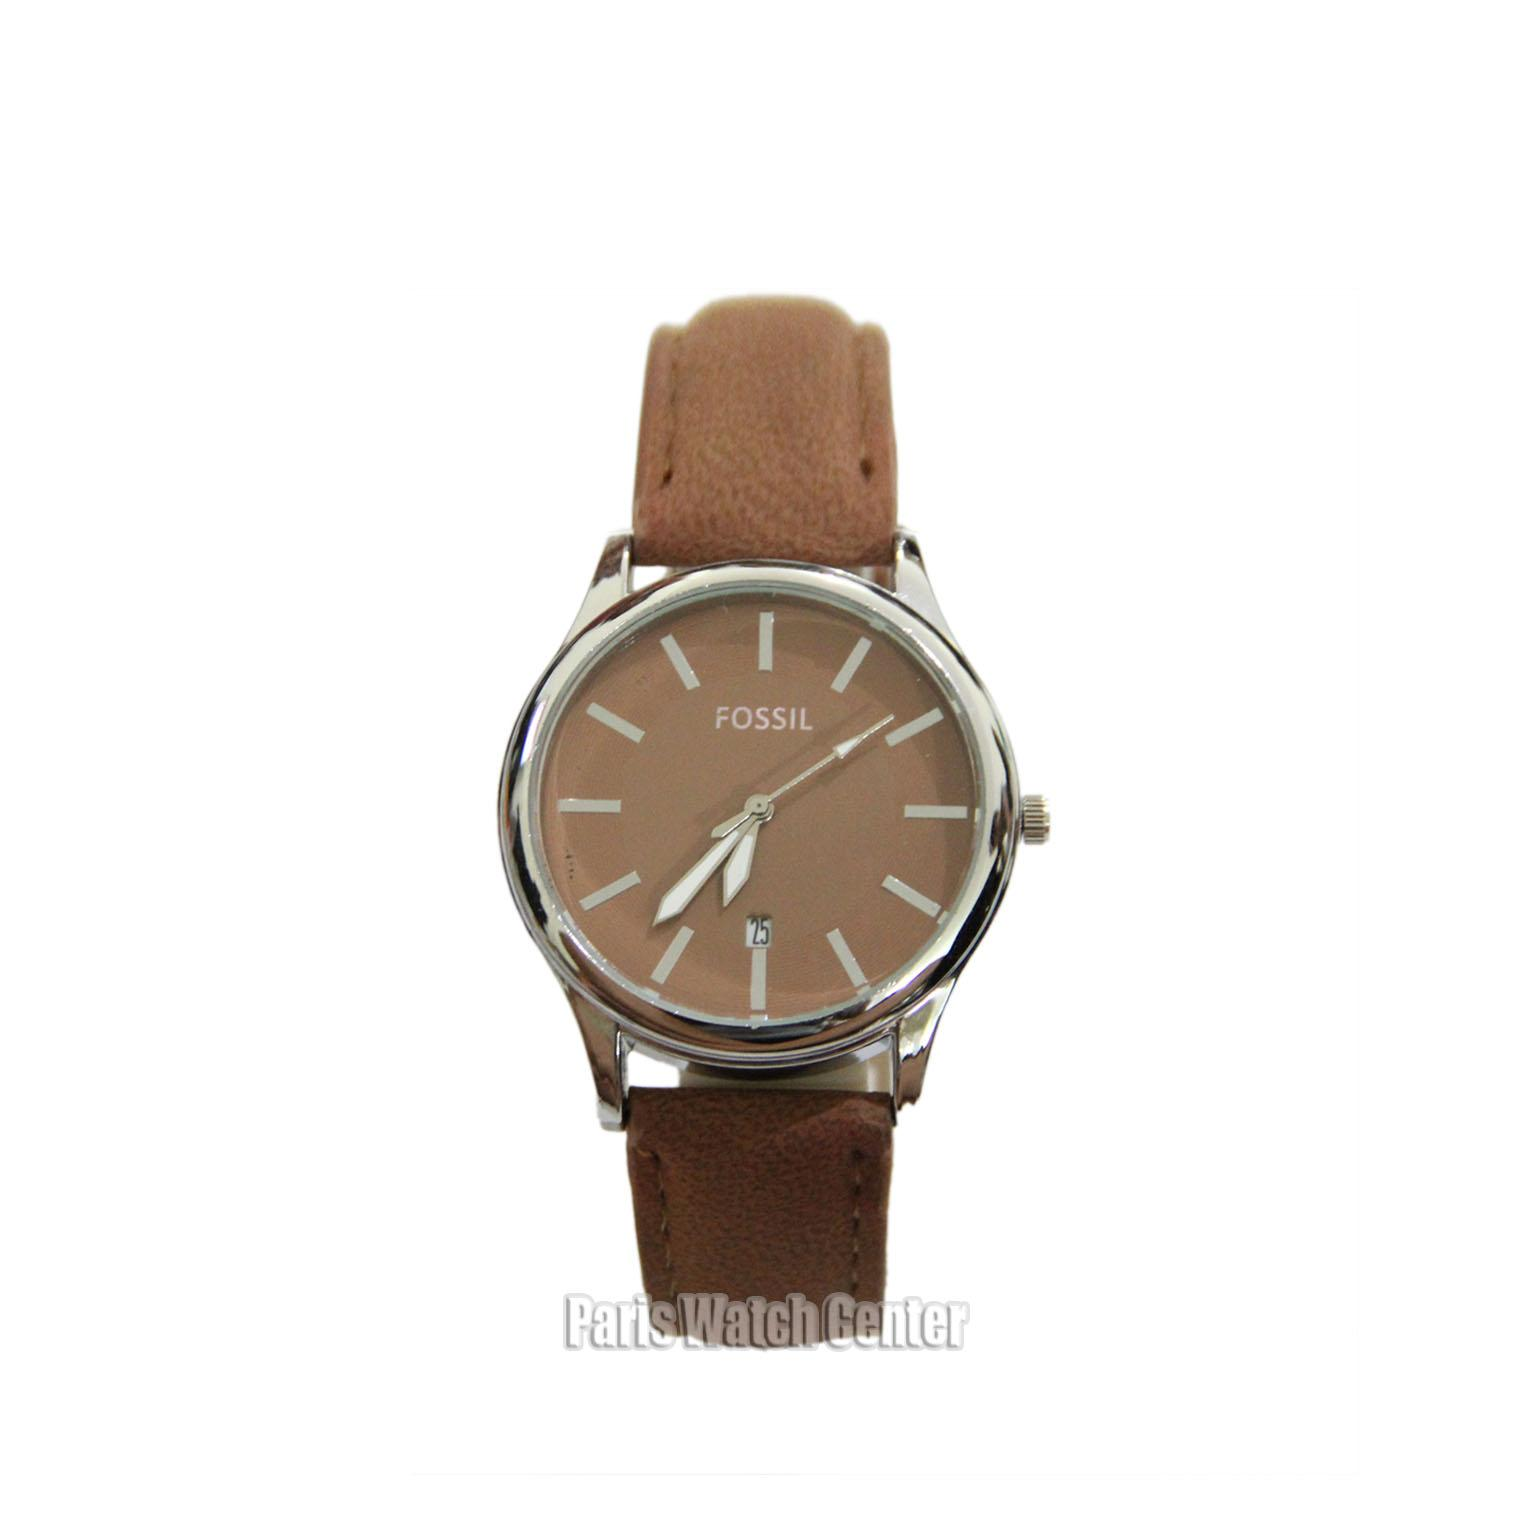 Jam Tangan Fossil Fashion Wanita Stainless Steel Leather Date Active MOdel Terbaru